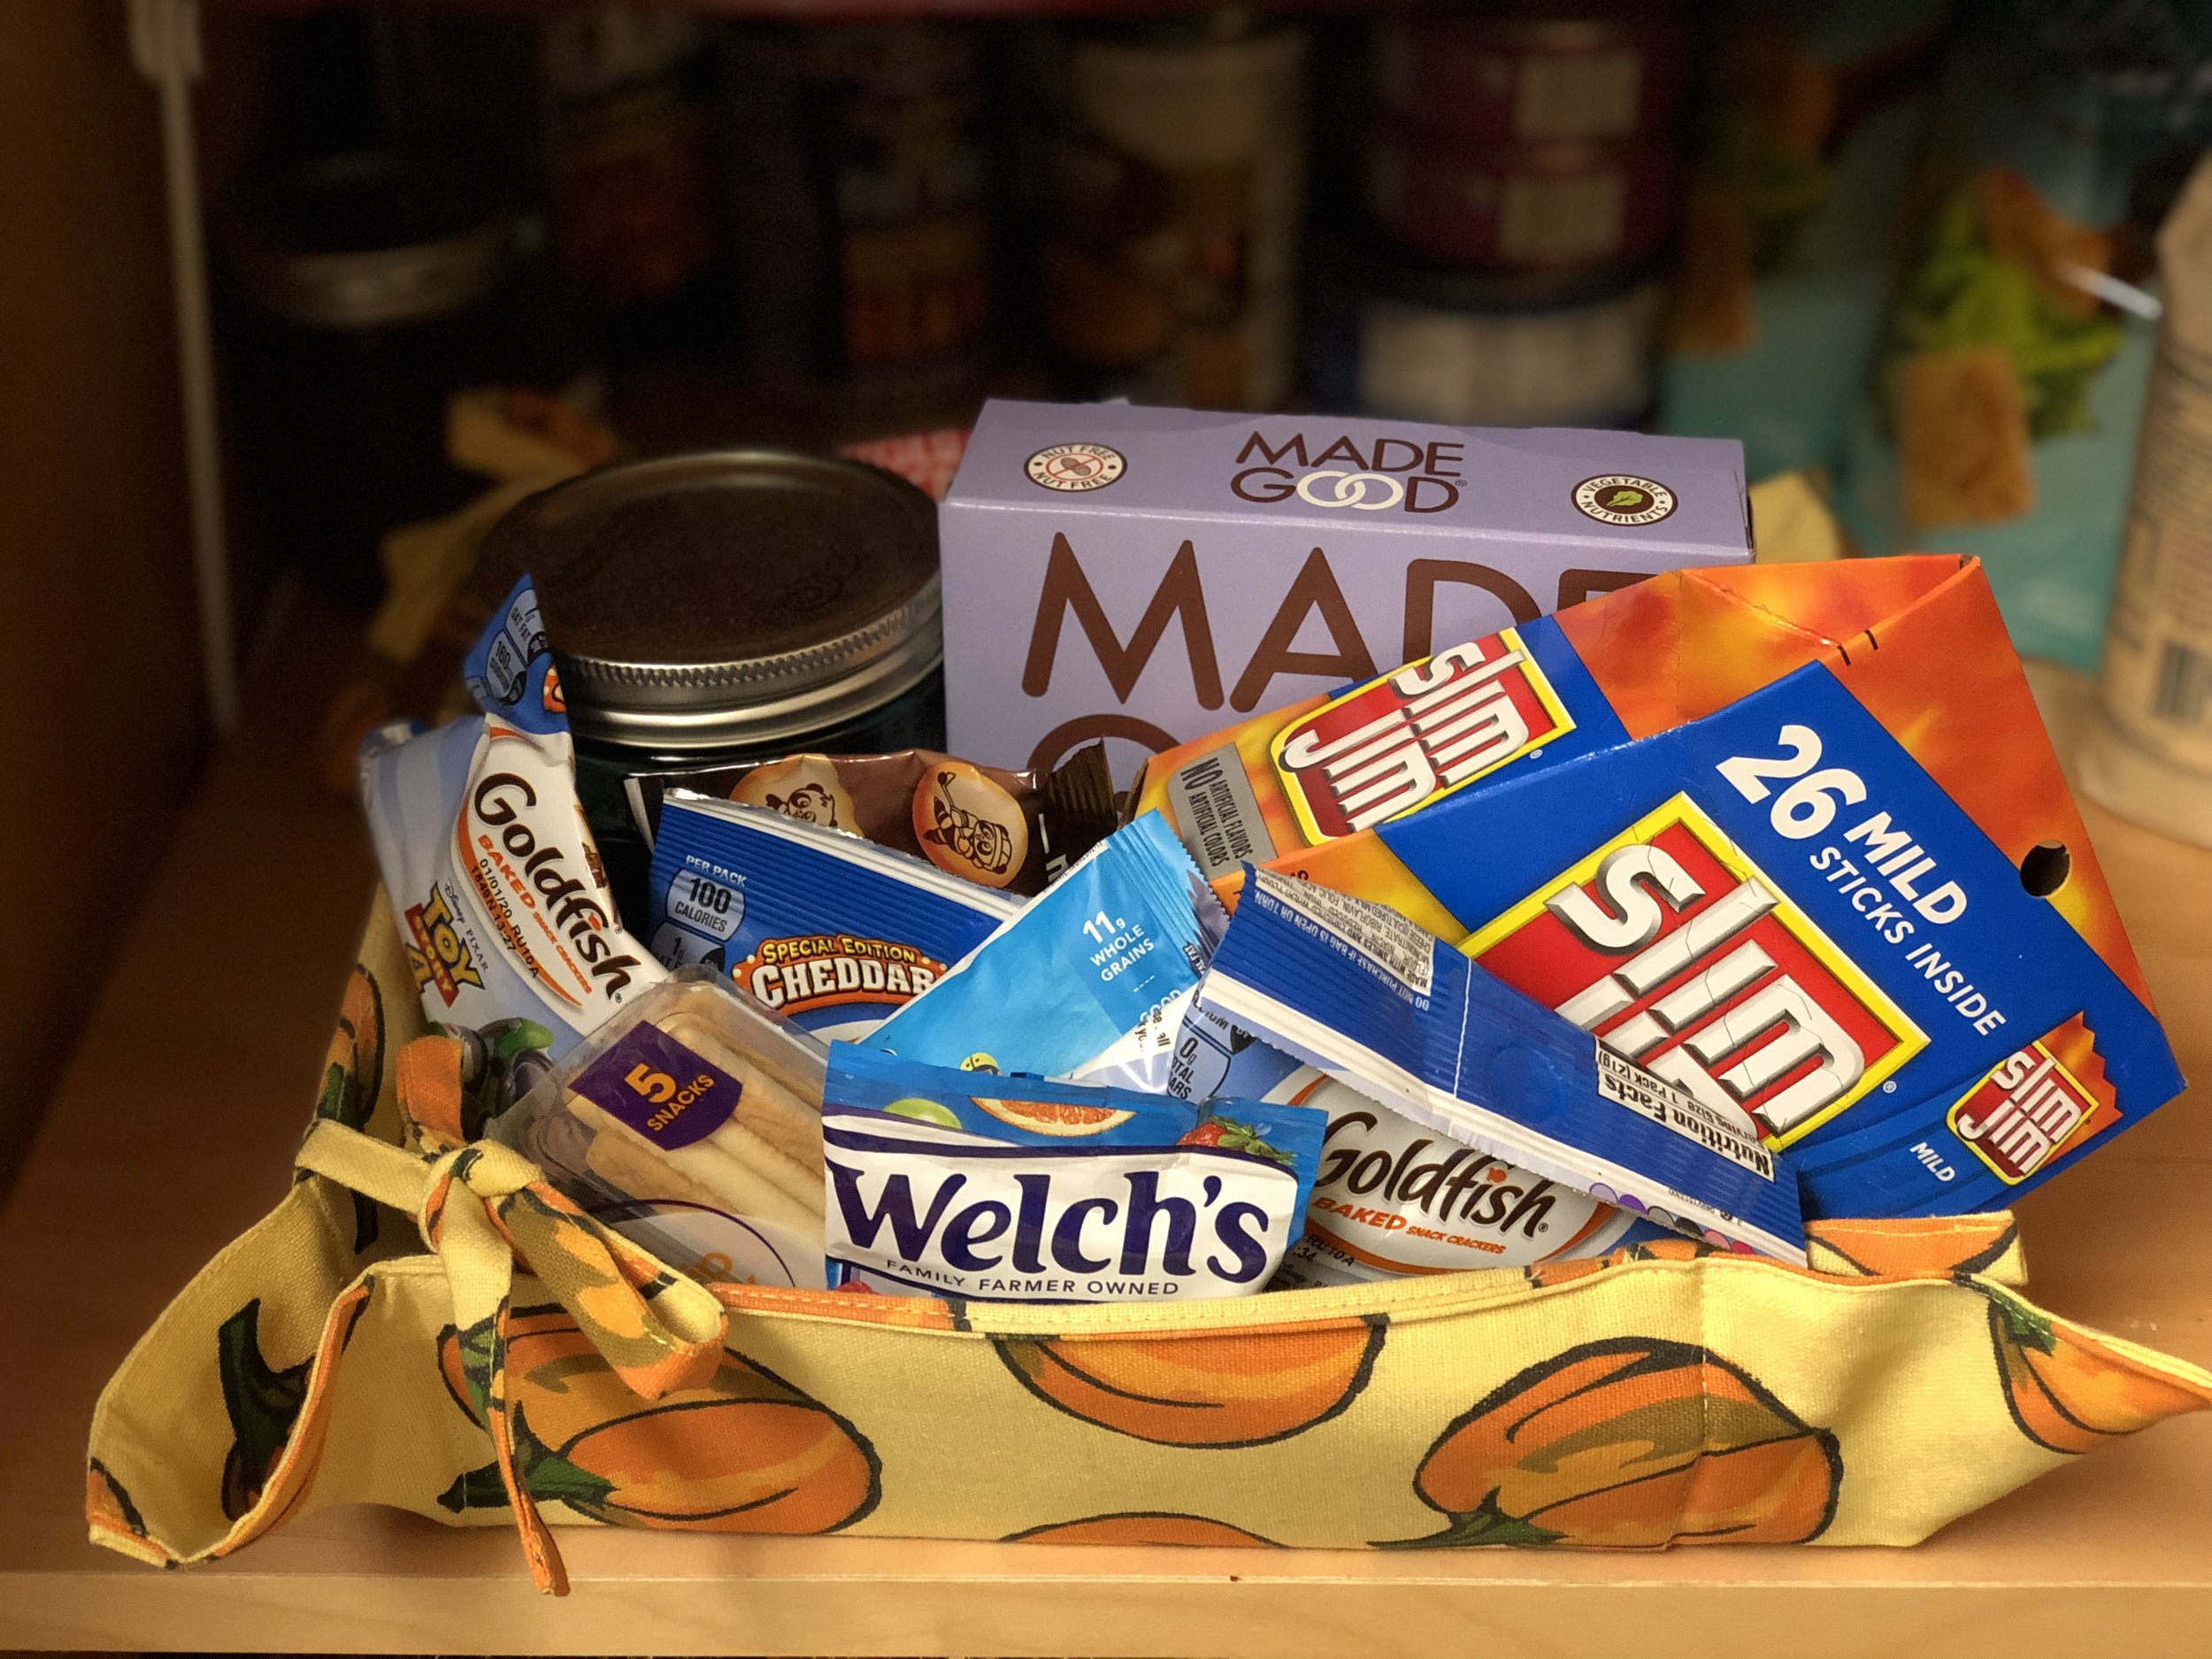 When picking snacks for this basket try to make them a single serving to help enable independence for your older child - they might need your help to open it but can otherwise do everything else, to include throw the wrapper out! Avoid snacks that can become messy like chocolate, to keep this as a snack to reduce parental involvement.